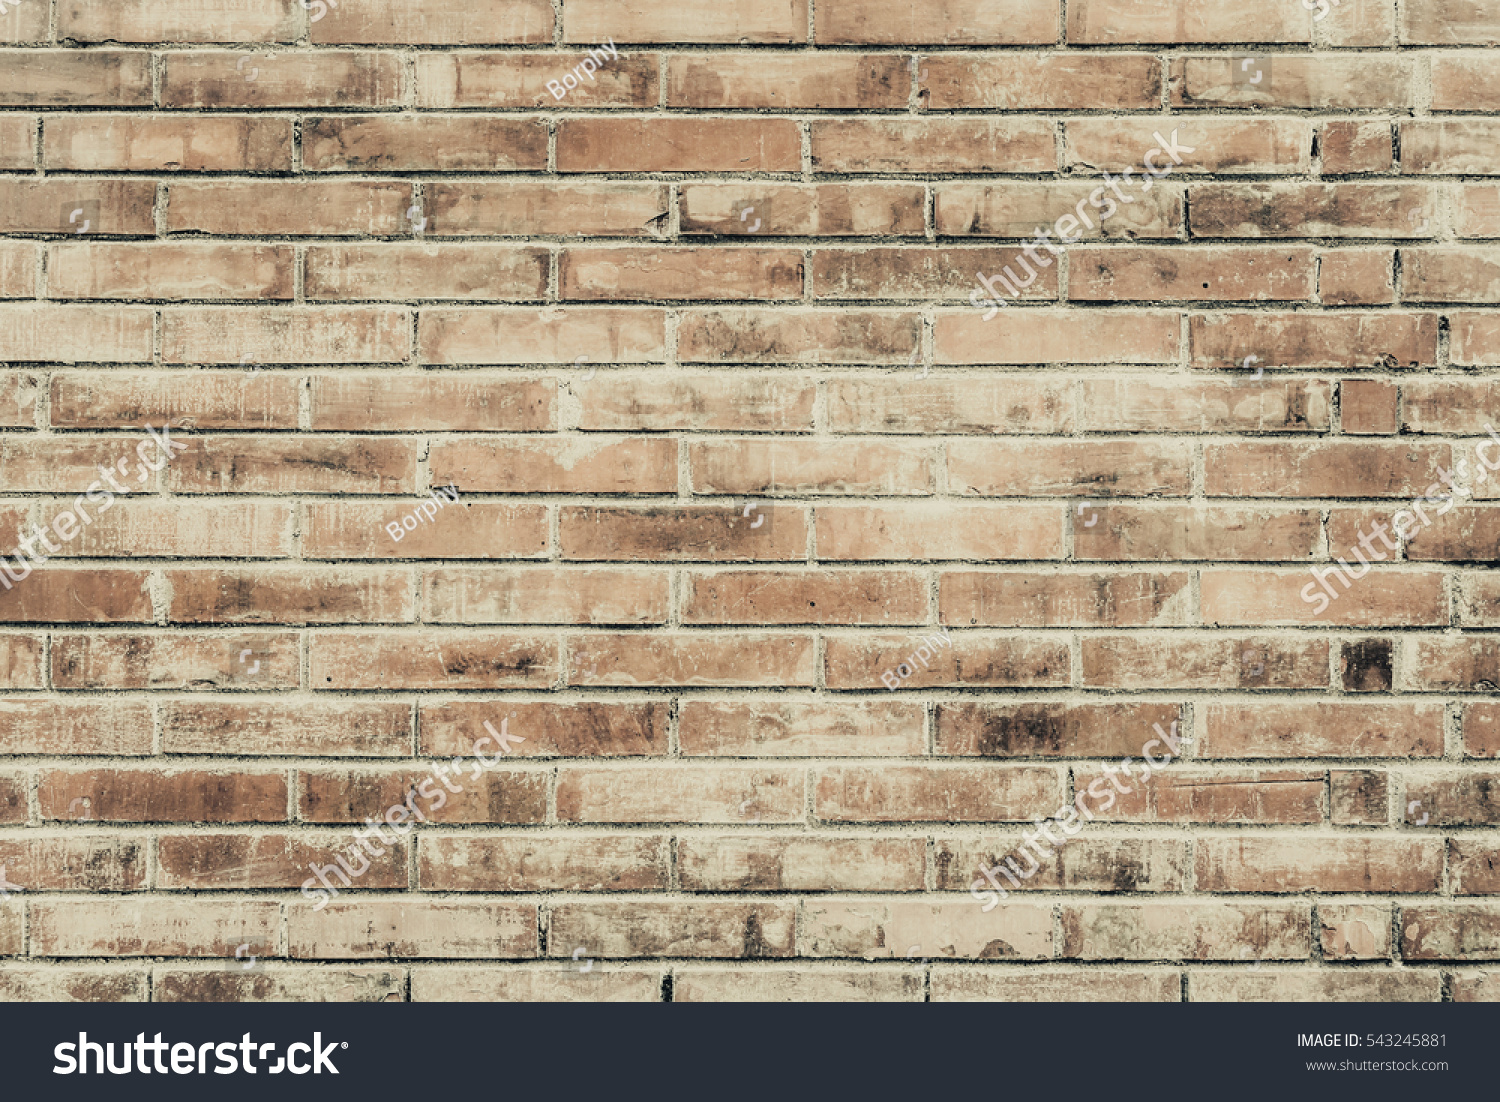 Old Brick Wall Cracks Scratches Horizontal Stock Photo 543245881 Shutterstock